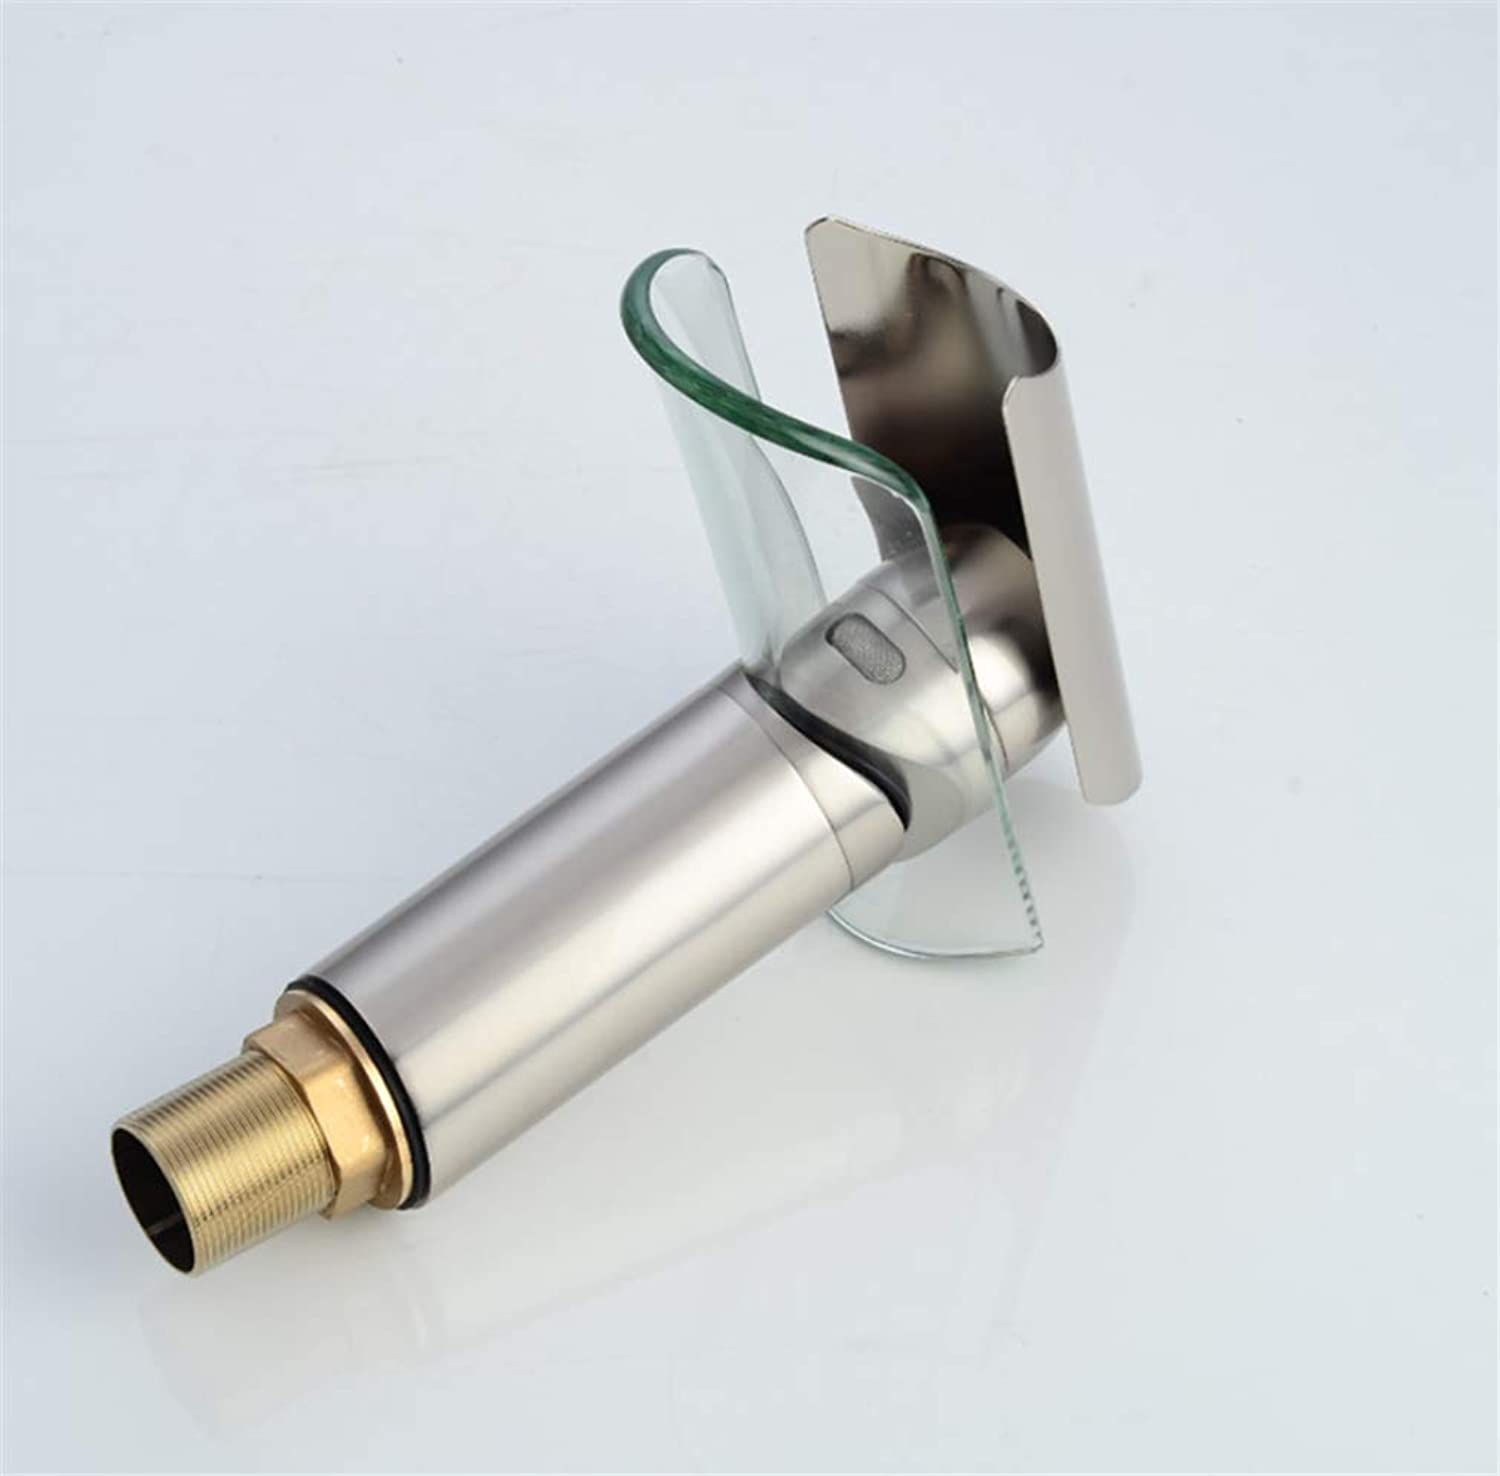 Pull Out The Pull Down Stainless Steelglass Waterfall Faucet Basin Head Faucet Faucet